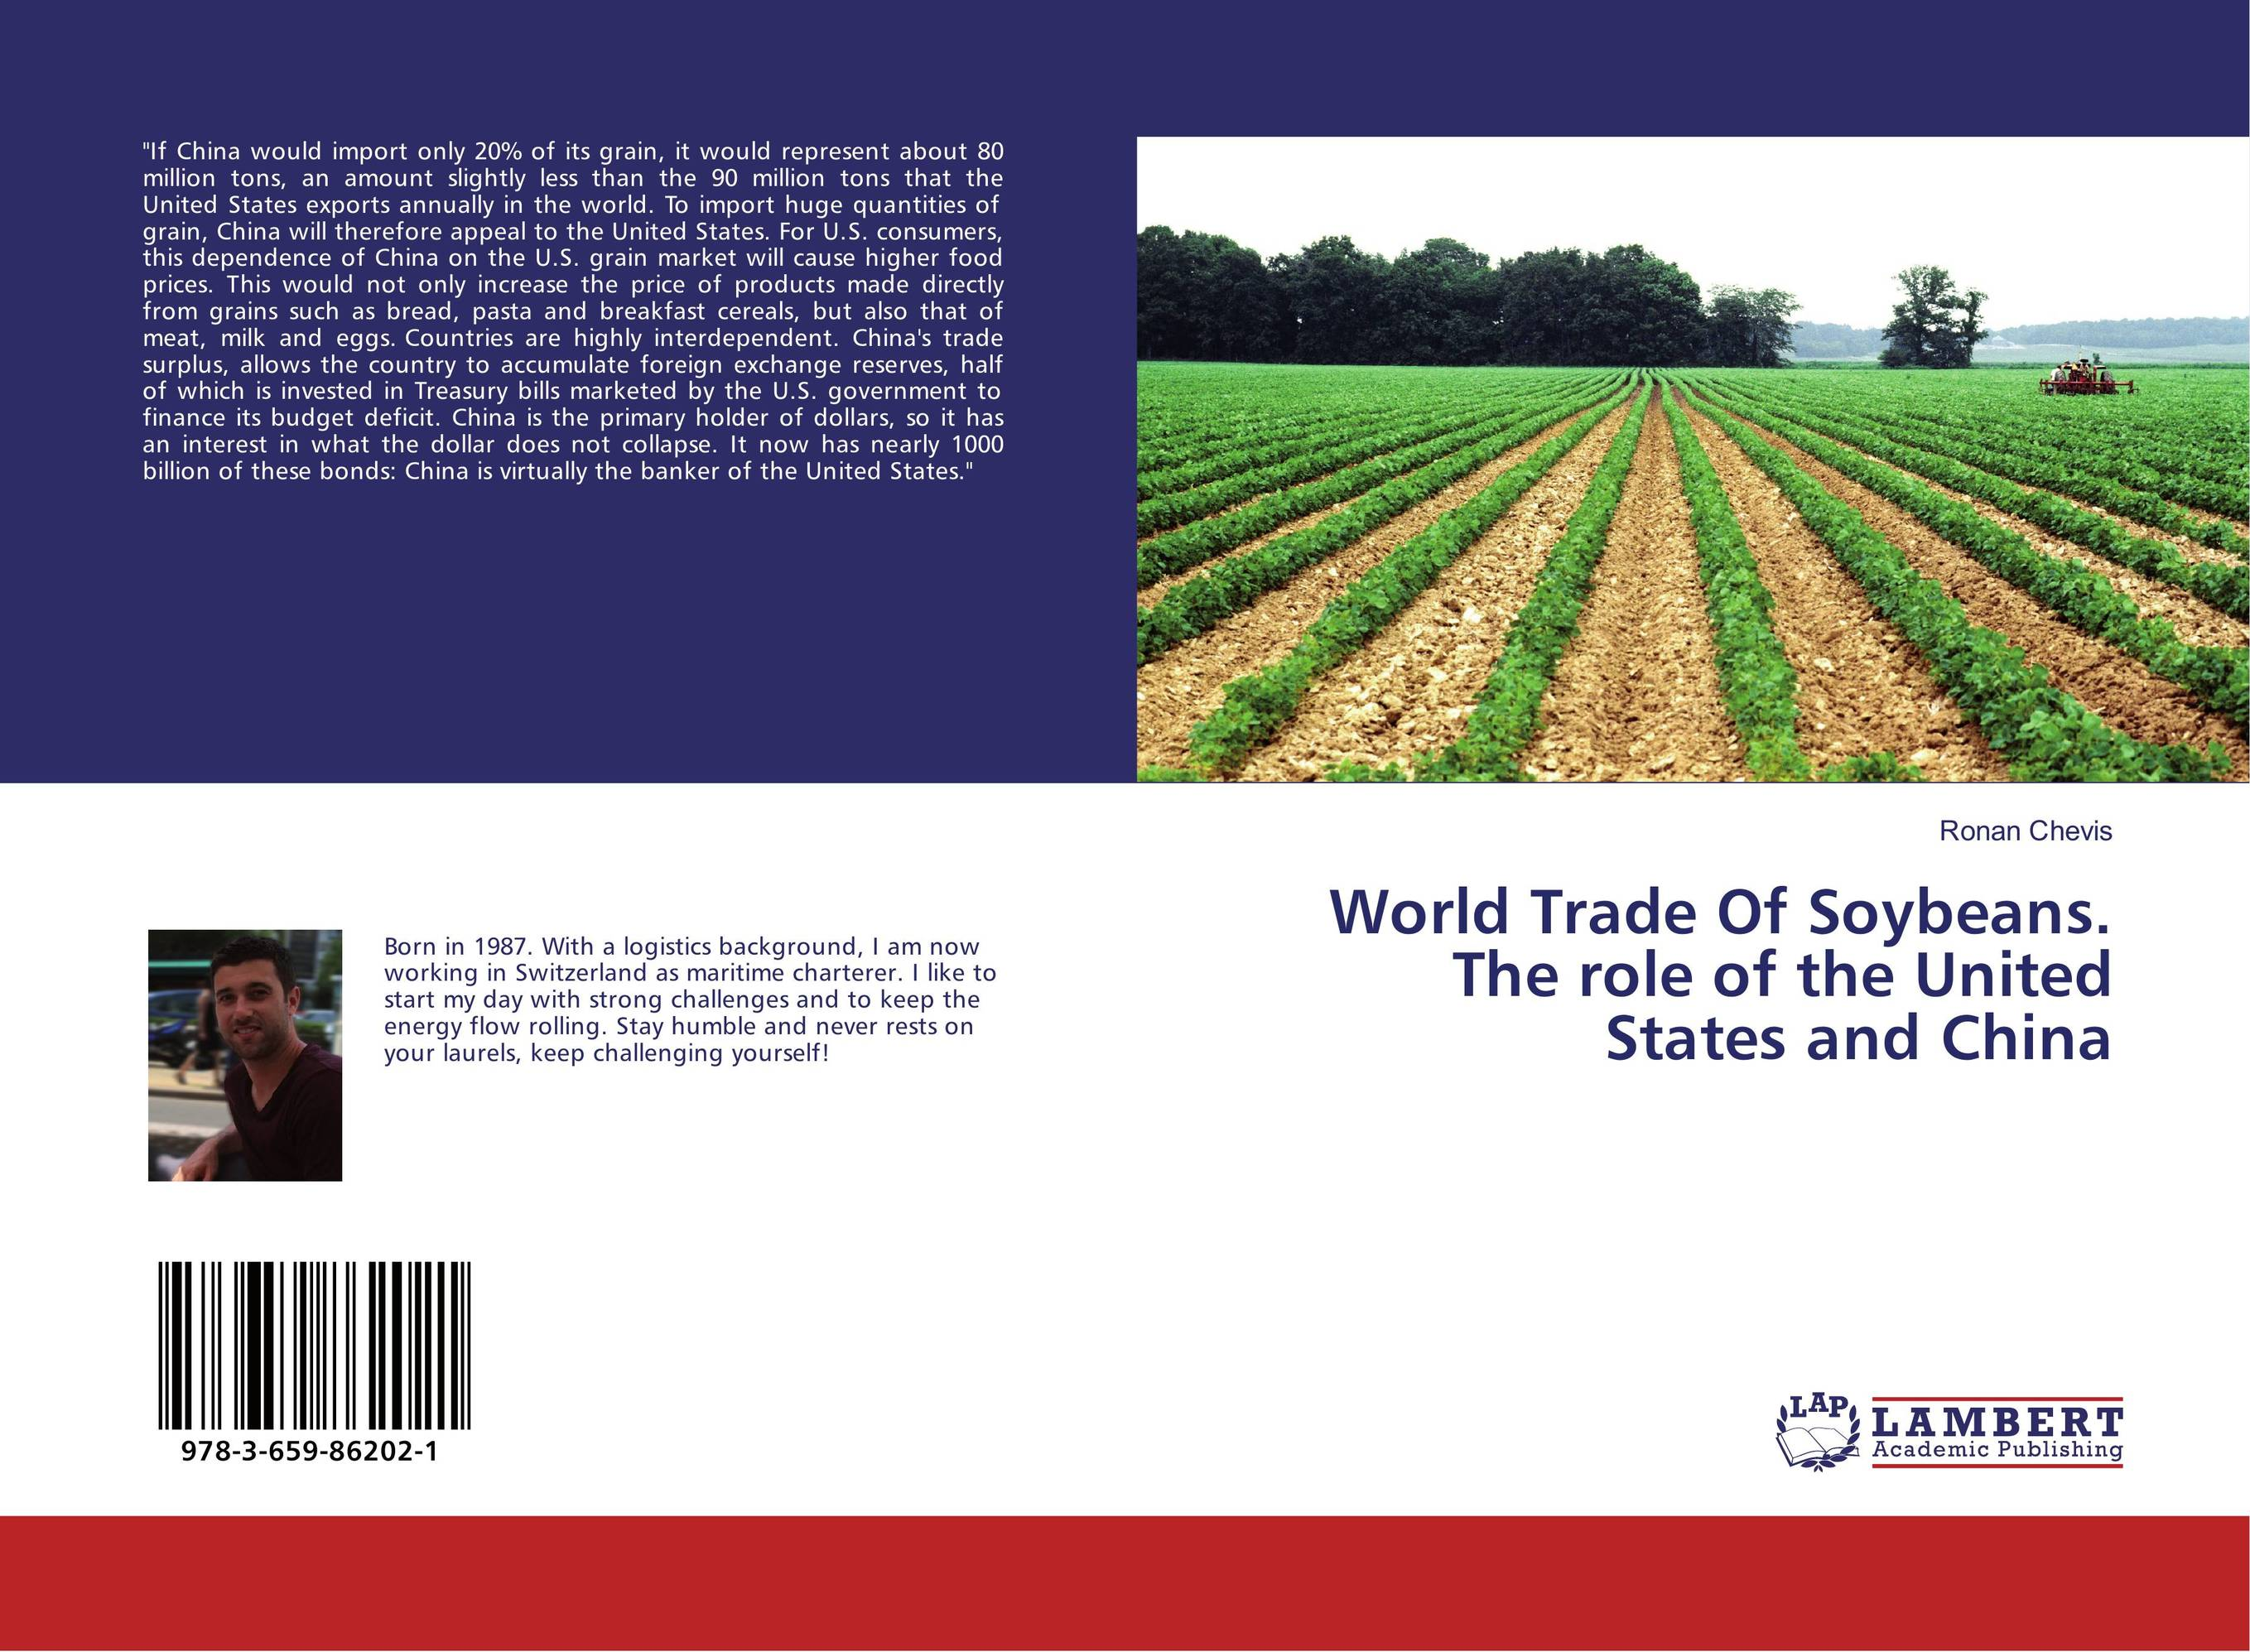 the role and significance of agribusiness in the united states The united states, a nation founded on a fundamental belief in equality, is today a multicultural mosaic of over 315 million people of individualism - the concept of individualism plays a significant role in the lives of many americans us culture emphasises individual initiative and personal achievement.